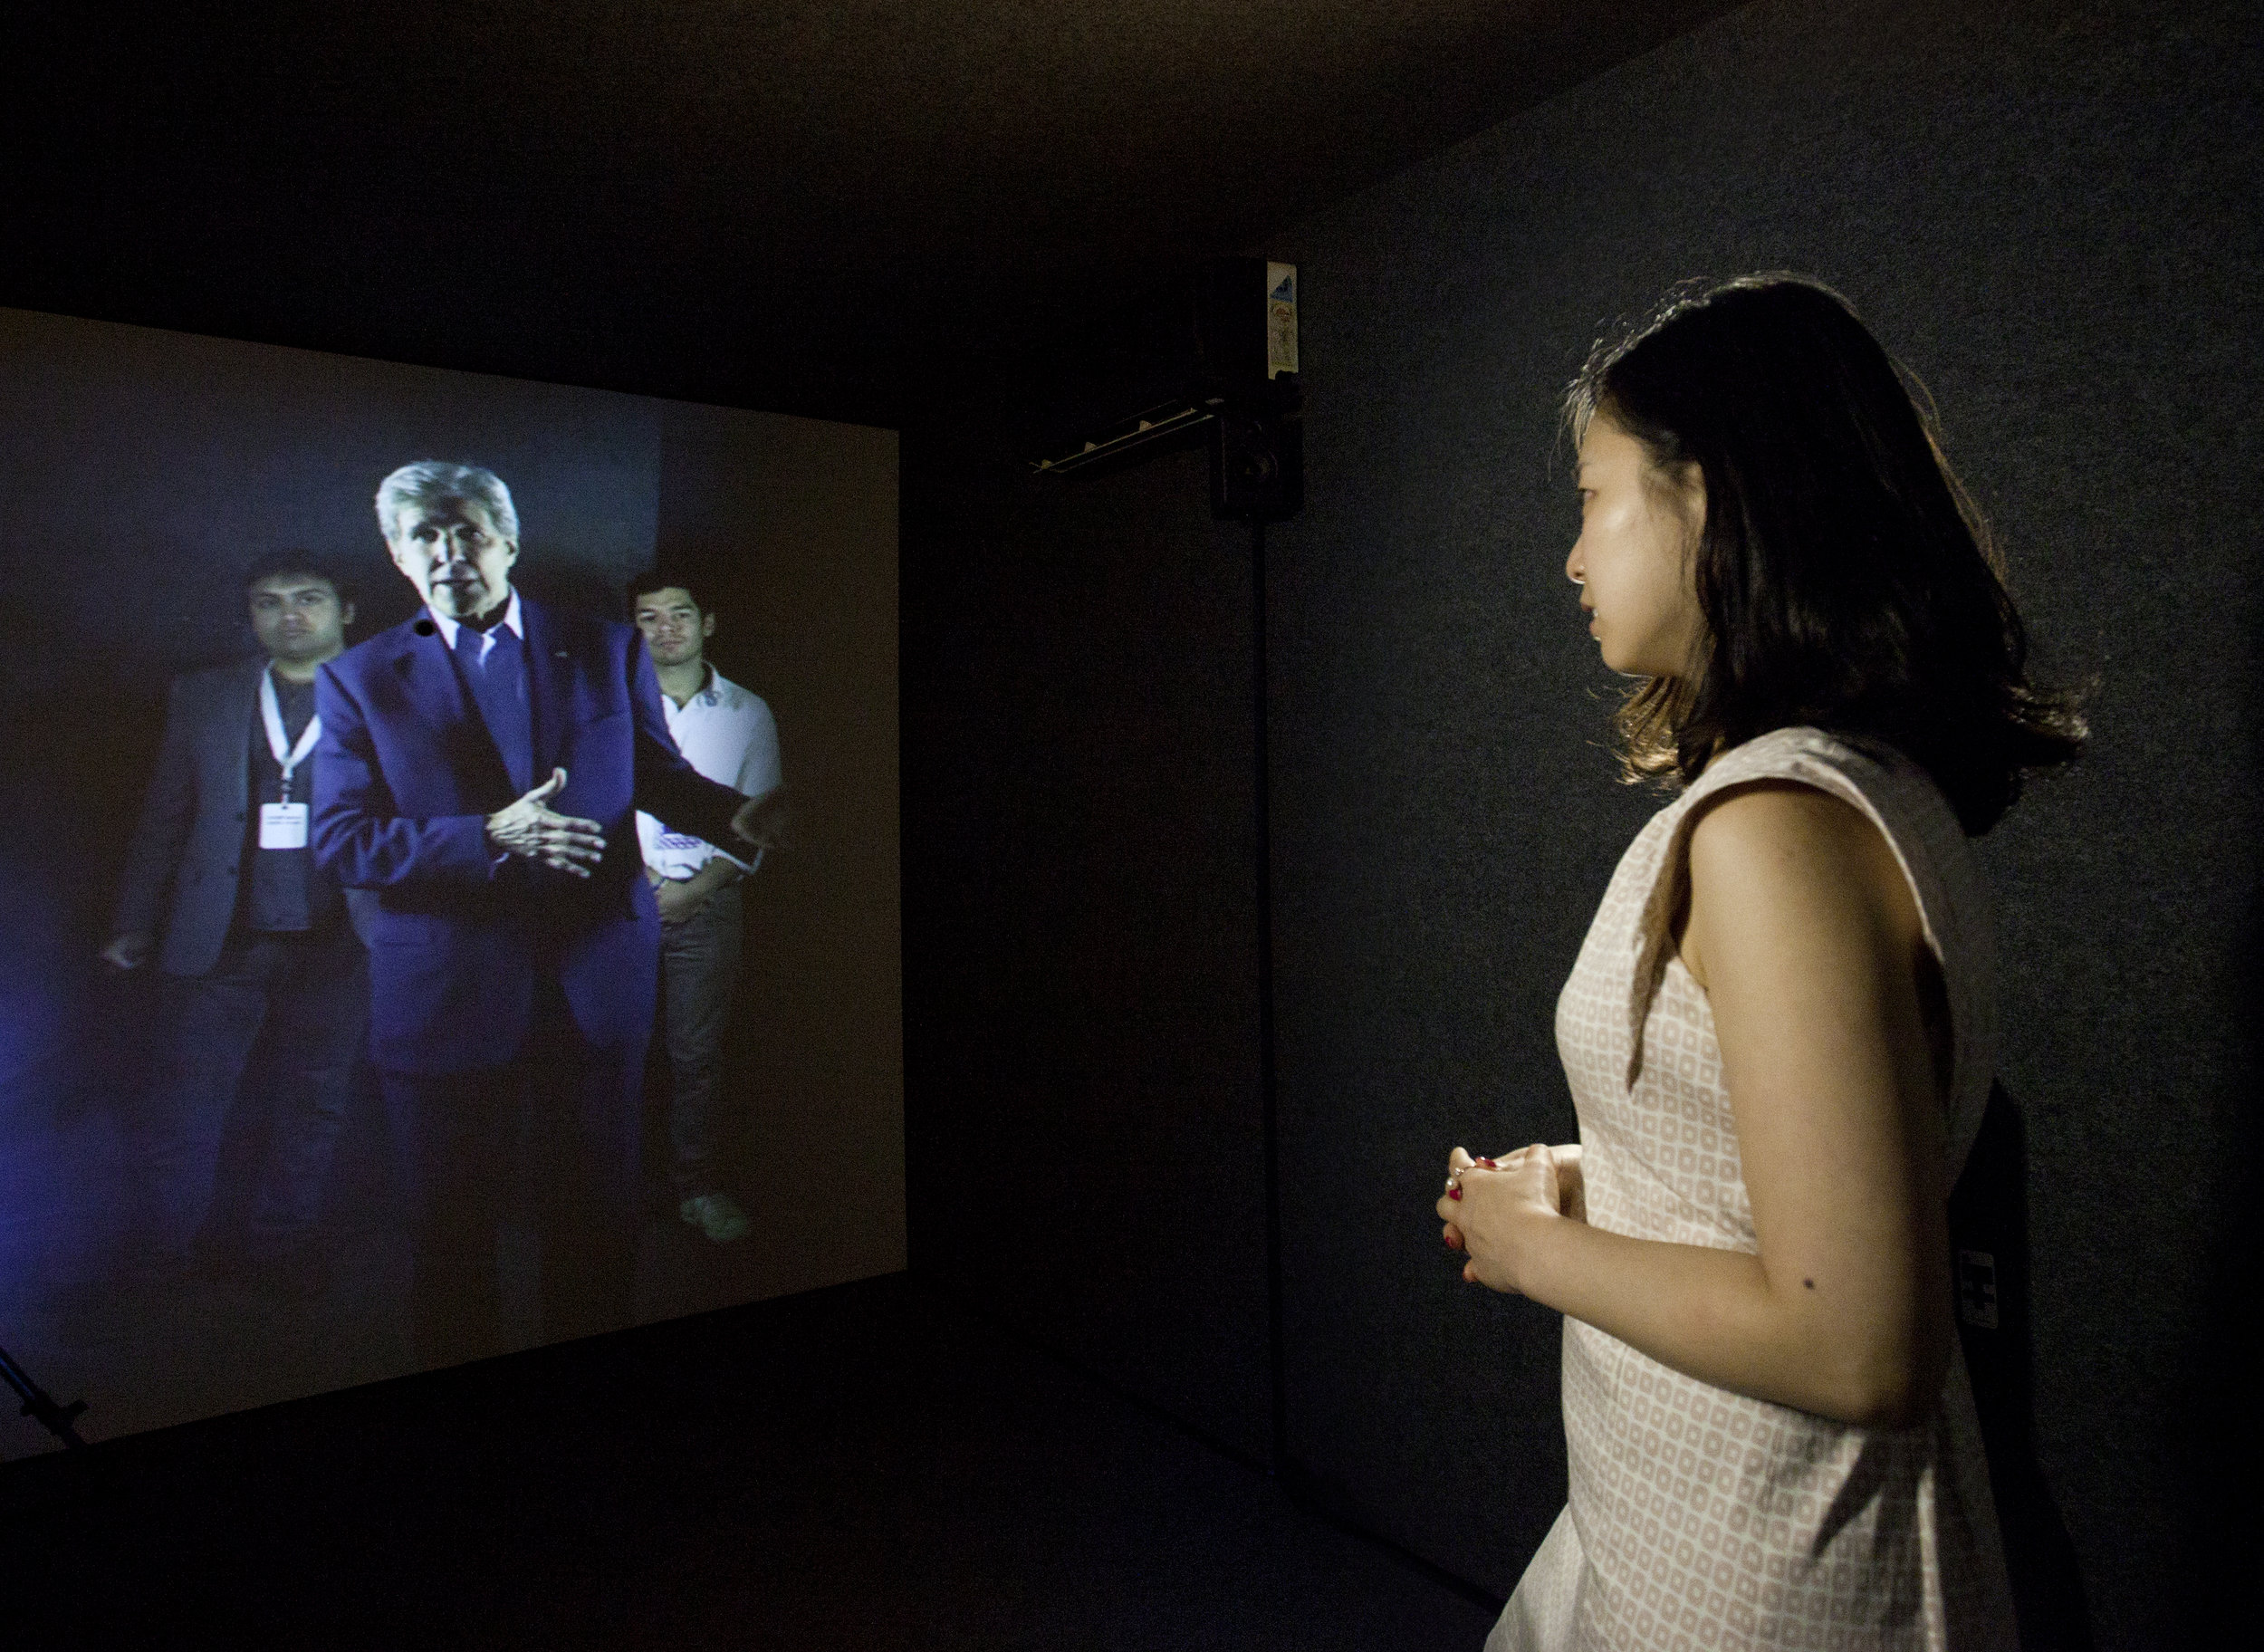 Entrepreneur in Seoul Portal speaking with U.S. Secretary of State John Kerry at the Stanford Portal